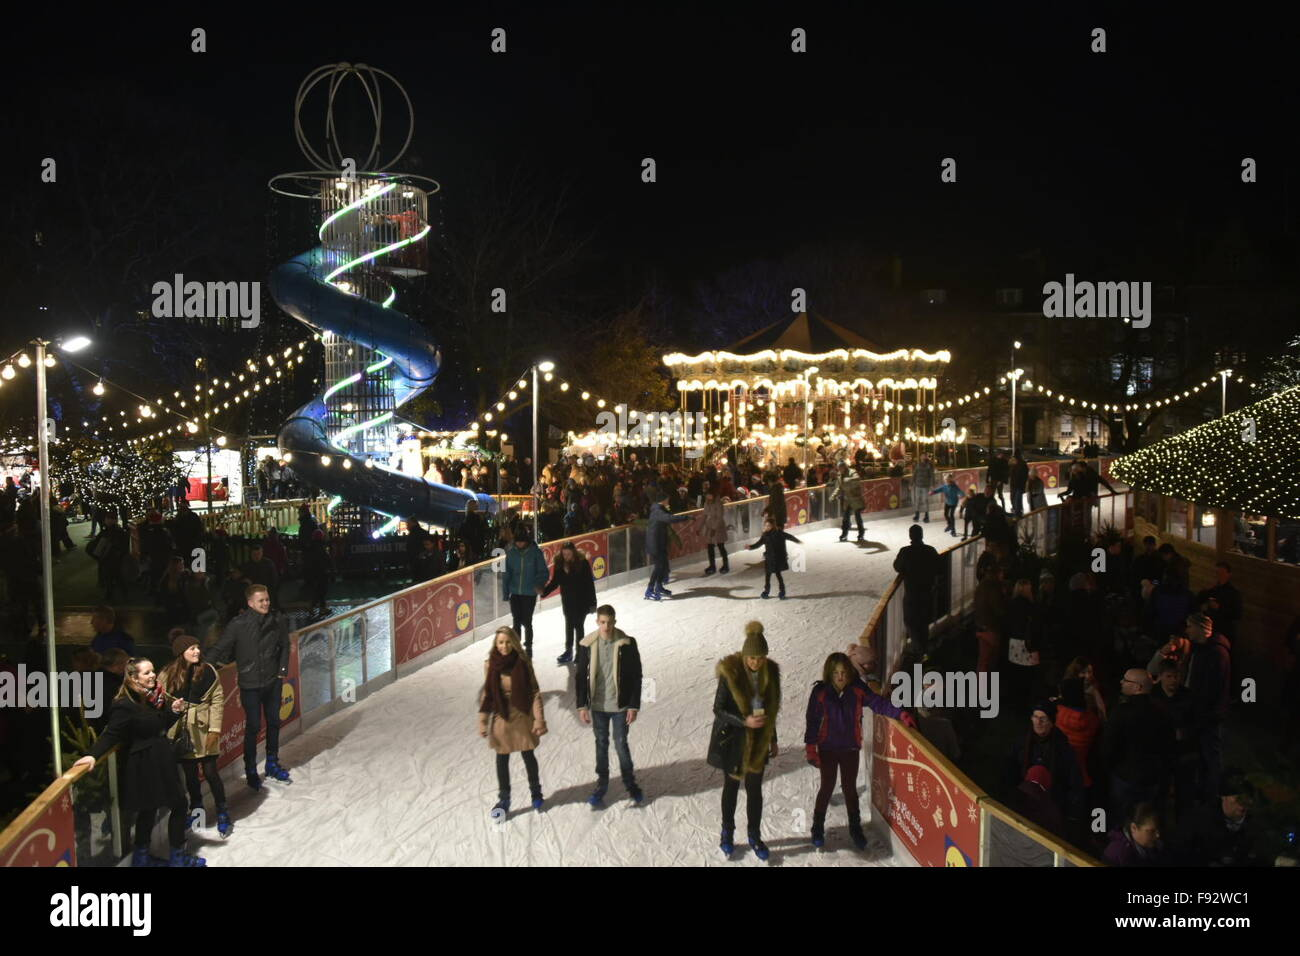 Edinburgh, Scotland, UK. 13th December, 2015. Shoppers throng to the Christmas Market and ice skate in St Andrew's - Stock Image